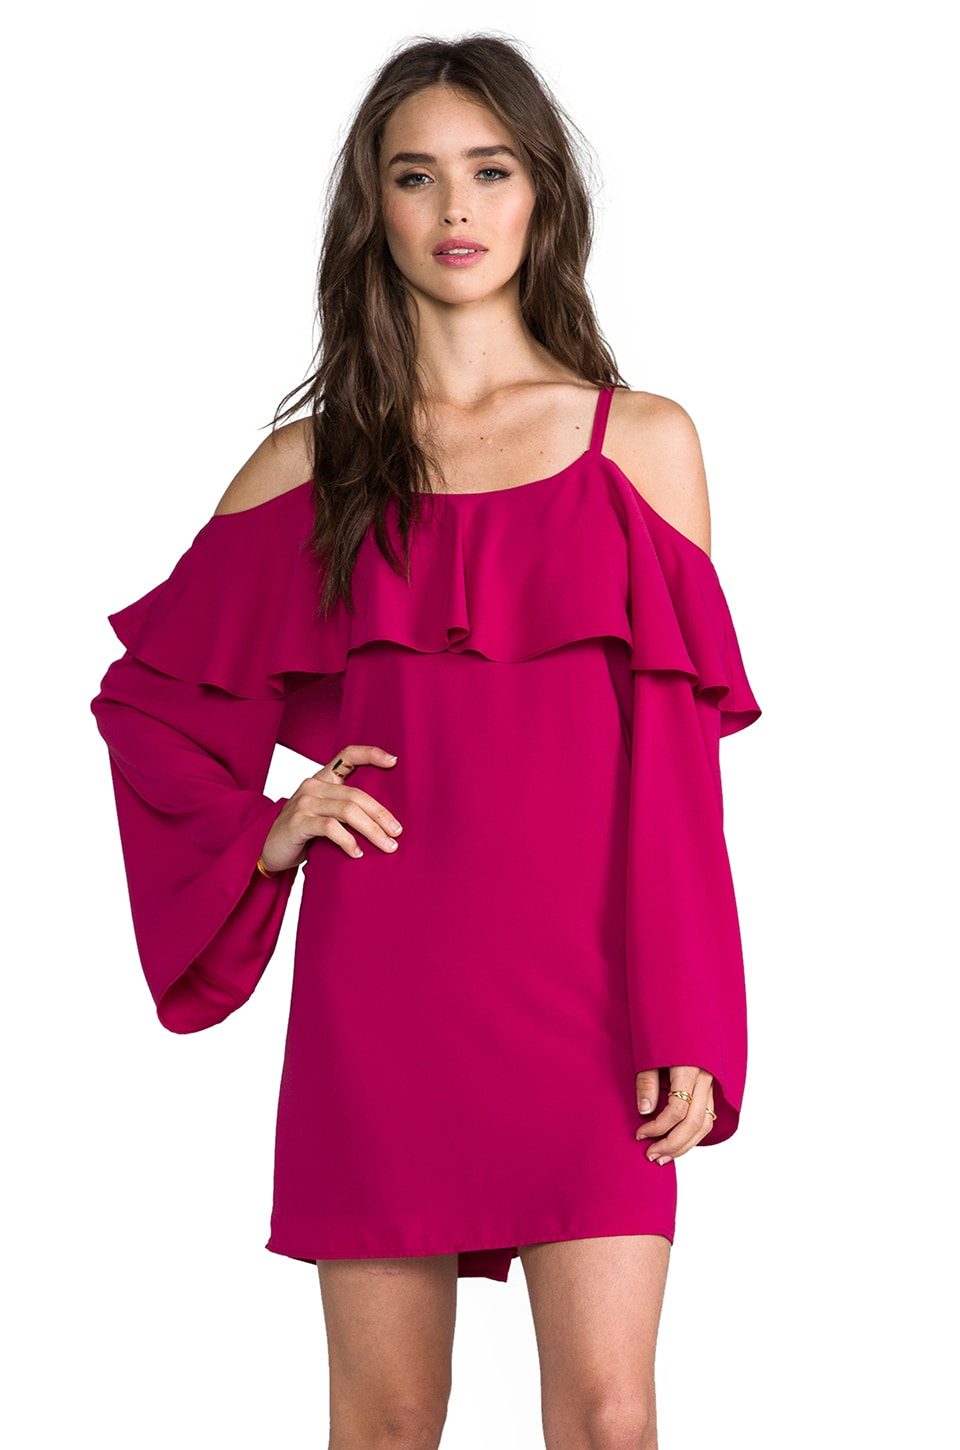 VAVA by Joy Han Leigh Open Shoulder Dress in Berry